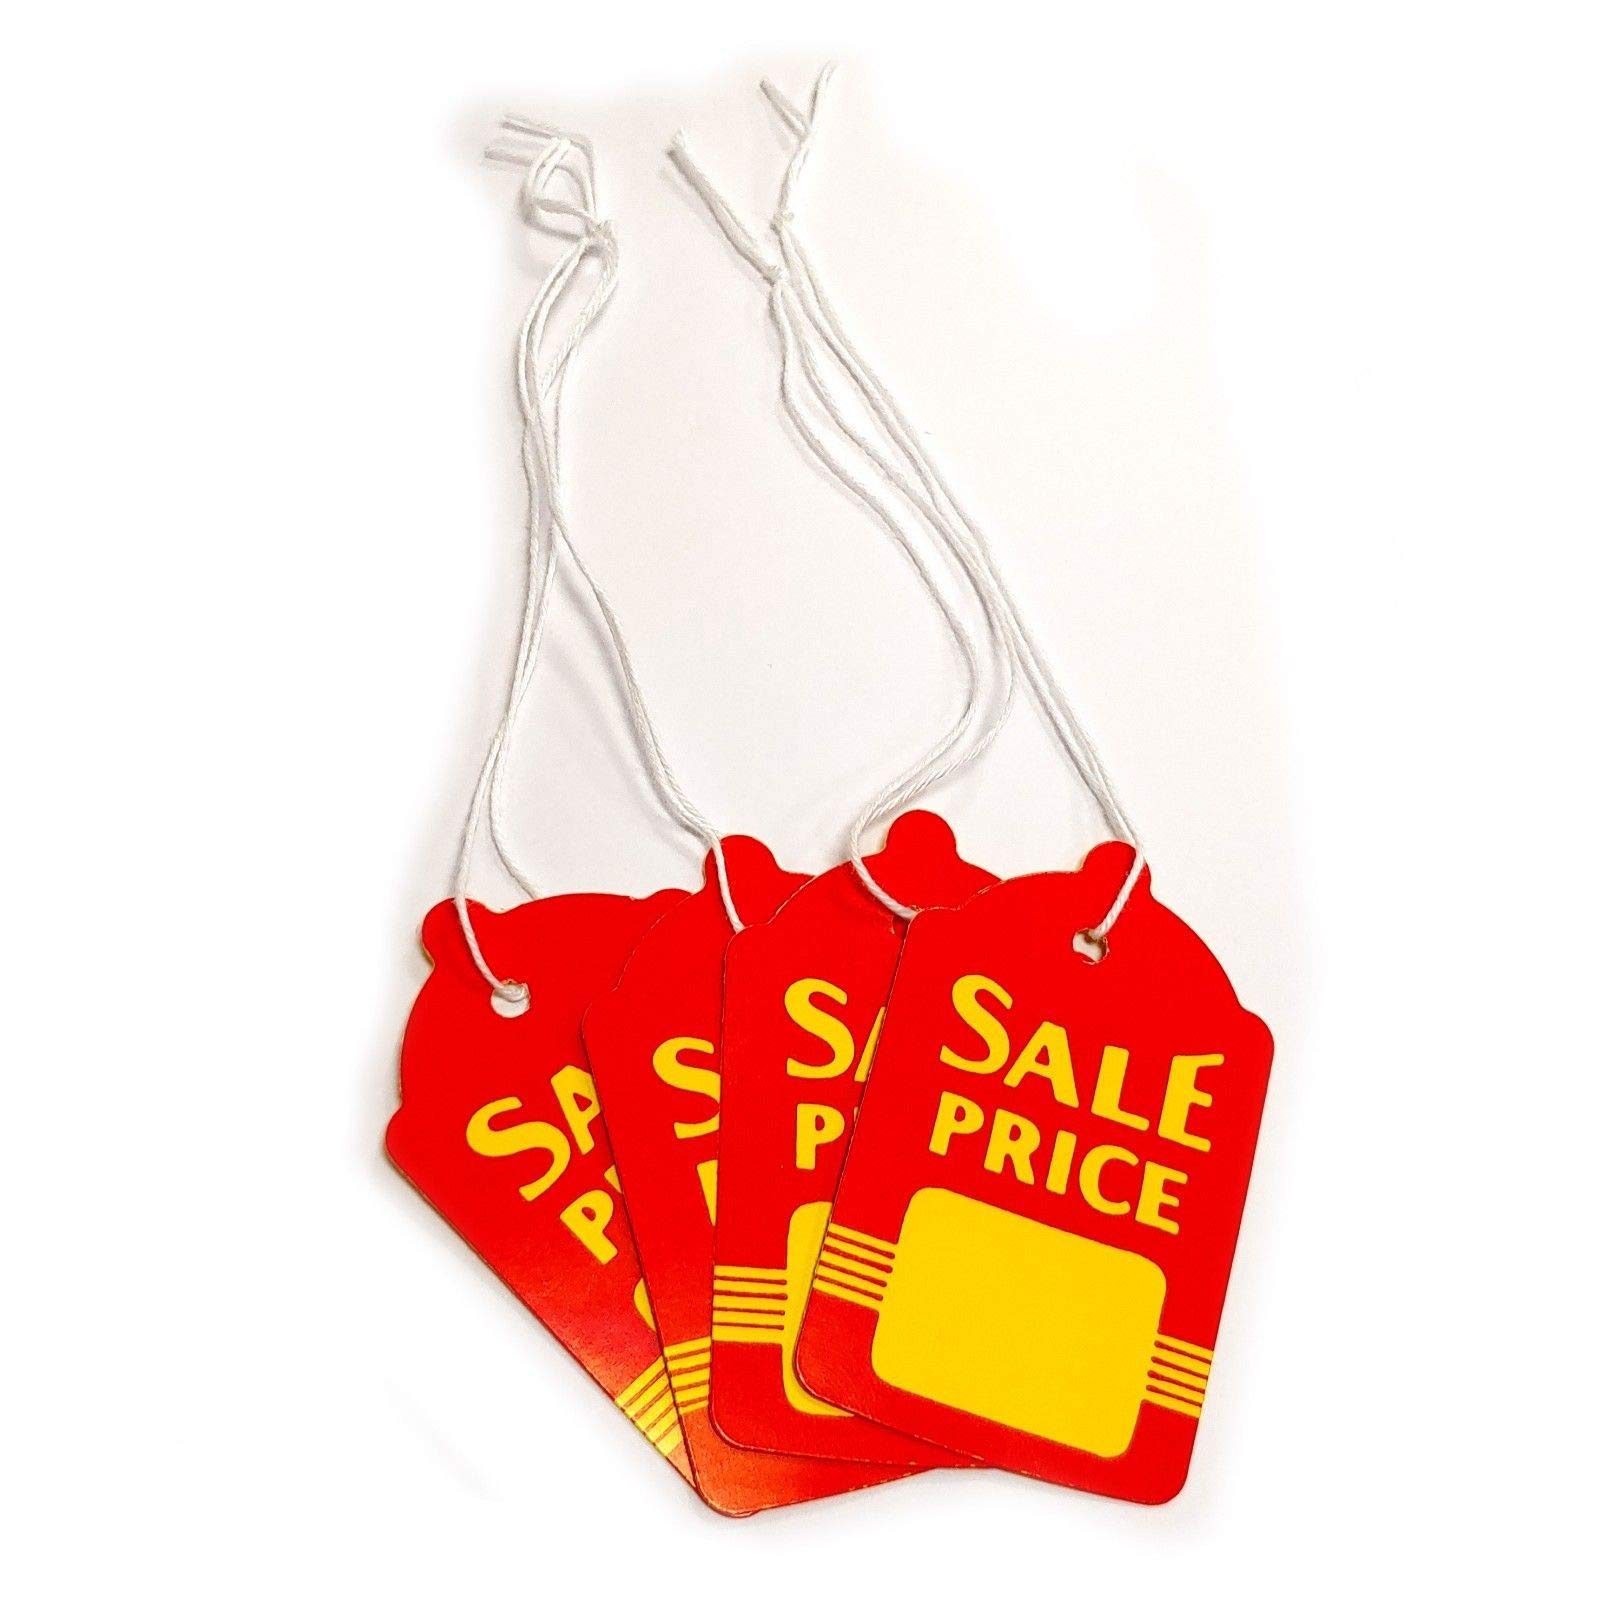 Large Red & Yellow Strung Boutique Sale Price Merchandise Tags: 1.6'' W x 2.7'' H, 200 Pack